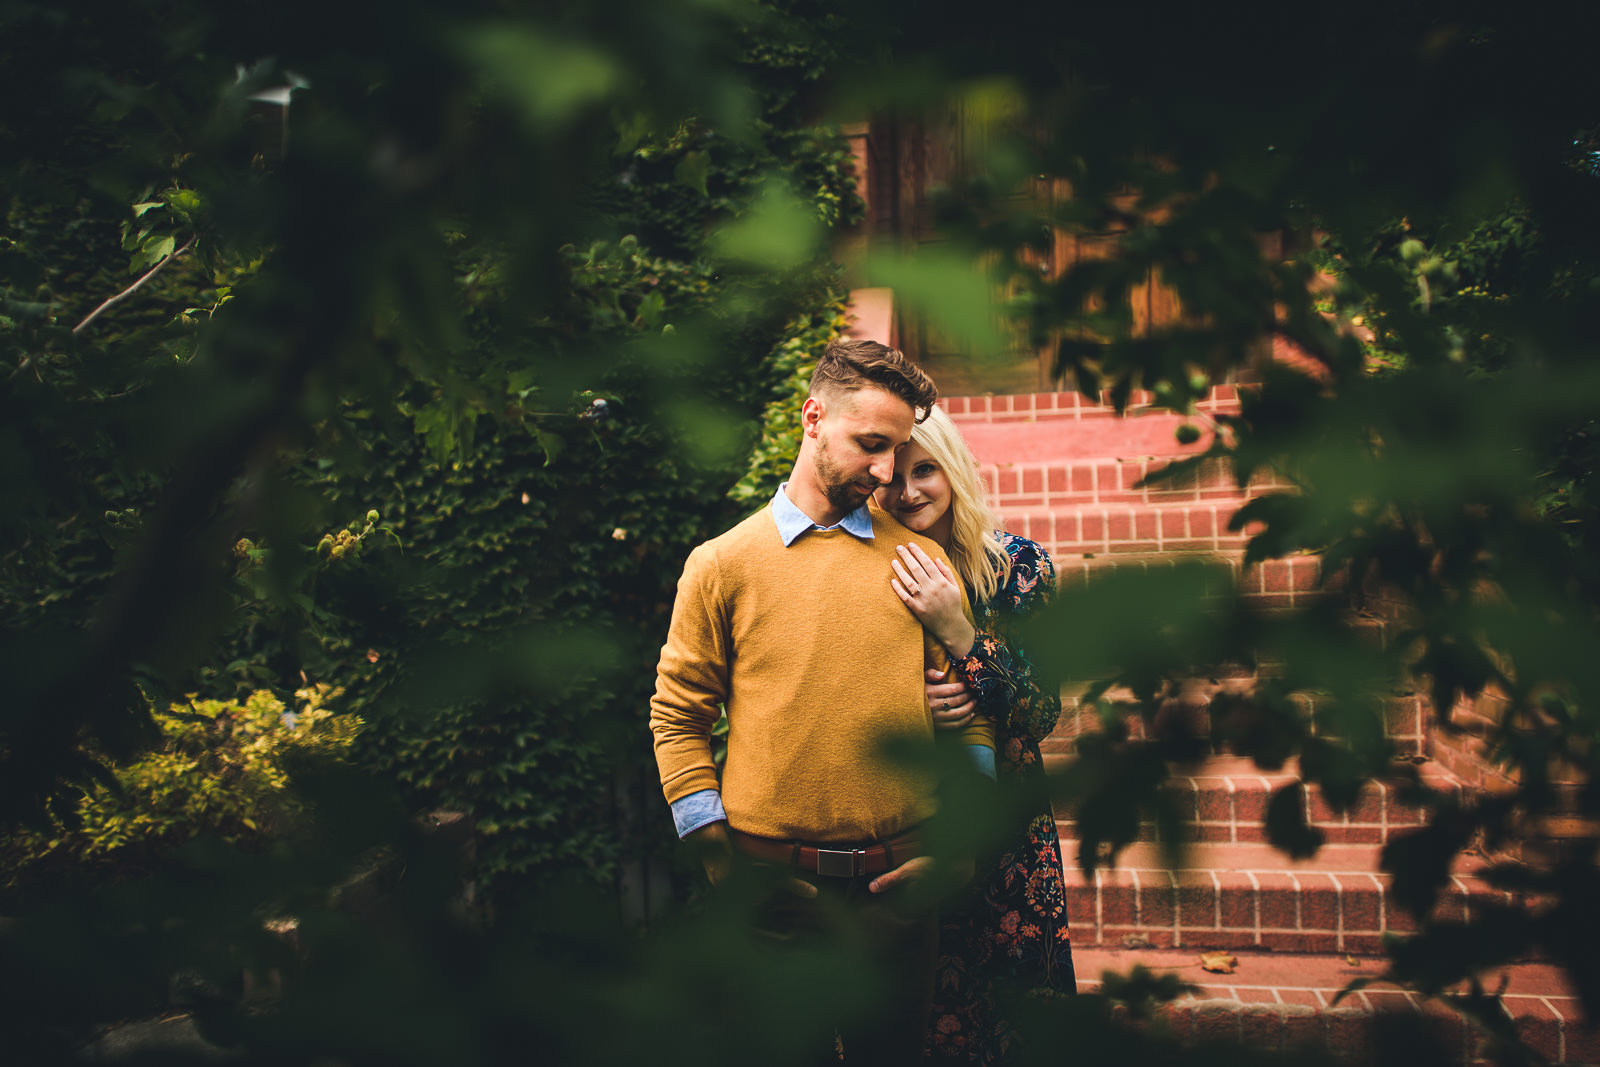 05 wes anderson engagement session - Wes Anderson Inspired Engagement Session in Wicker Park // Kelsey + Mark